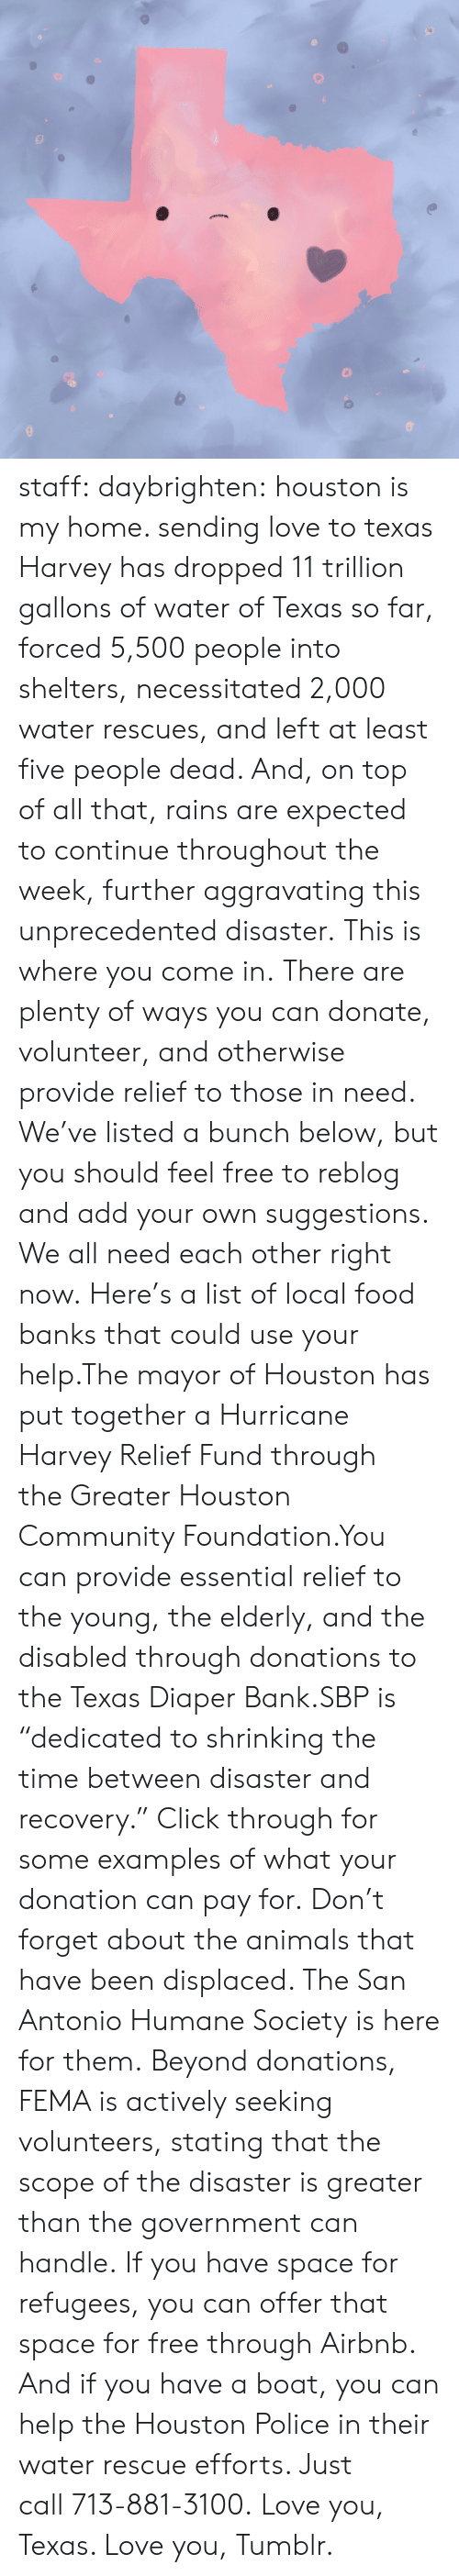 """Animals, Click, and Community: staff:  daybrighten: houston is my home. sending love to texas Harvey has dropped 11 trillion gallons of water of Texas so far, forced 5,500 people into shelters, necessitated 2,000 water rescues, and left at least five people dead. And, on top of all that, rains are expected to continue throughout the week, further aggravating this unprecedented disaster.This is where you come in.There are plenty of ways you can donate, volunteer, and otherwise provide relief to those in need. We've listed a bunch below, but you should feel free to reblog and add your own suggestions. We all need each other right now.Here's a list of local food banksthat could use your help.The mayor of Houston has put together a Hurricane Harvey Relief Fund through theGreater Houston Community Foundation.You can provide essential relief to the young, the elderly, and the disabled through donations to theTexas Diaper Bank.SBPis """"dedicated to shrinking the time between disaster and recovery."""" Click through for some examples of what your donation can pay for.Don't forget about the animals that have been displaced. TheSan Antonio Humane Societyis here for them.Beyond donations, FEMA is actively seeking volunteers, stating that the scope of the disaster is greater than the government can handle.If you have space for refugees, you can offer that space for free through Airbnb. And if you have a boat, you can help the Houston Police in their water rescue efforts. Just call713-881-3100.Love you, Texas. Love you, Tumblr."""